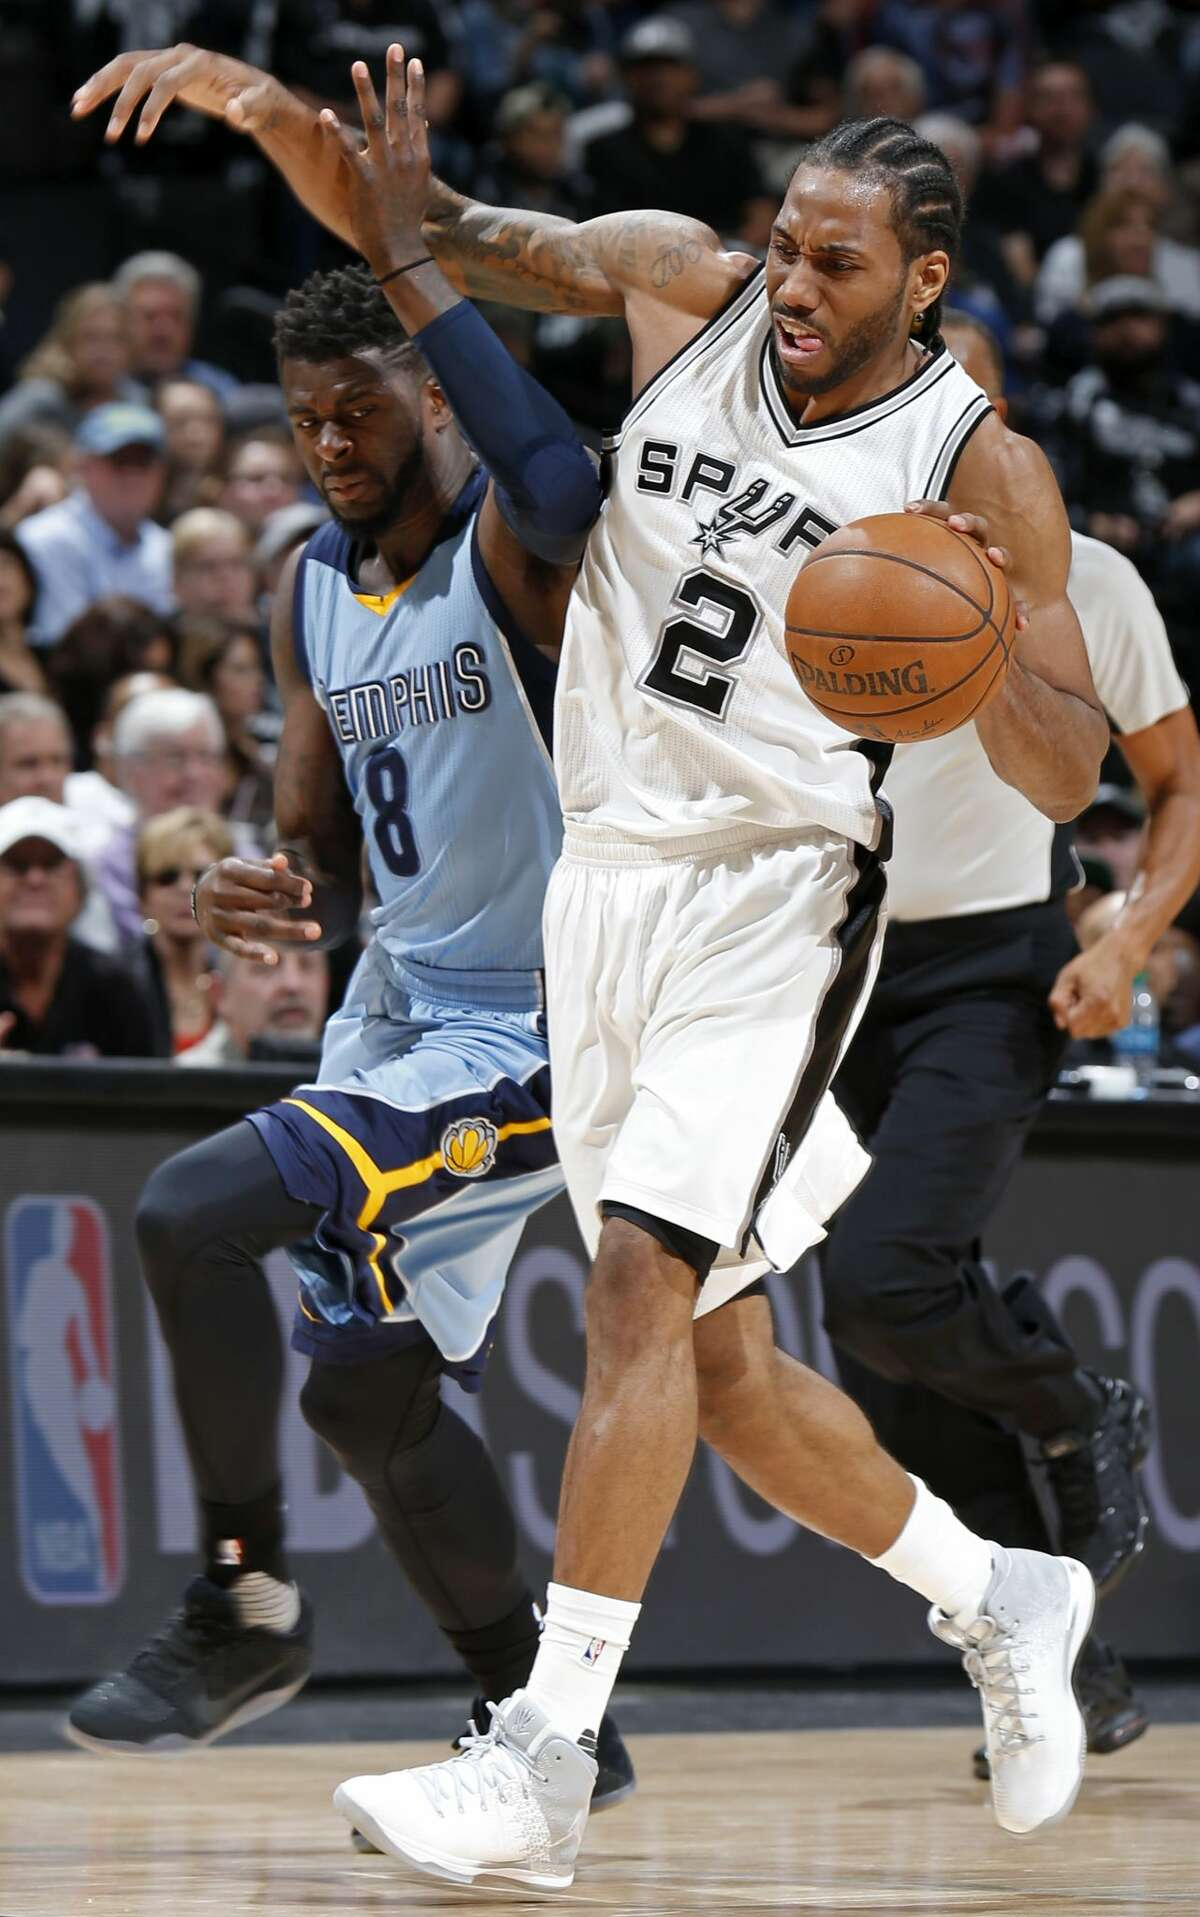 San Antonio Spurs' Kawhi Leonard looks for room around Memphis Grizzlies?• James Ennis III during first half action of Game 2 in the first round of the Western Conference playoffs held Monday April 17, 2017 at the AT&T Center. Leonard was fouled on the play.